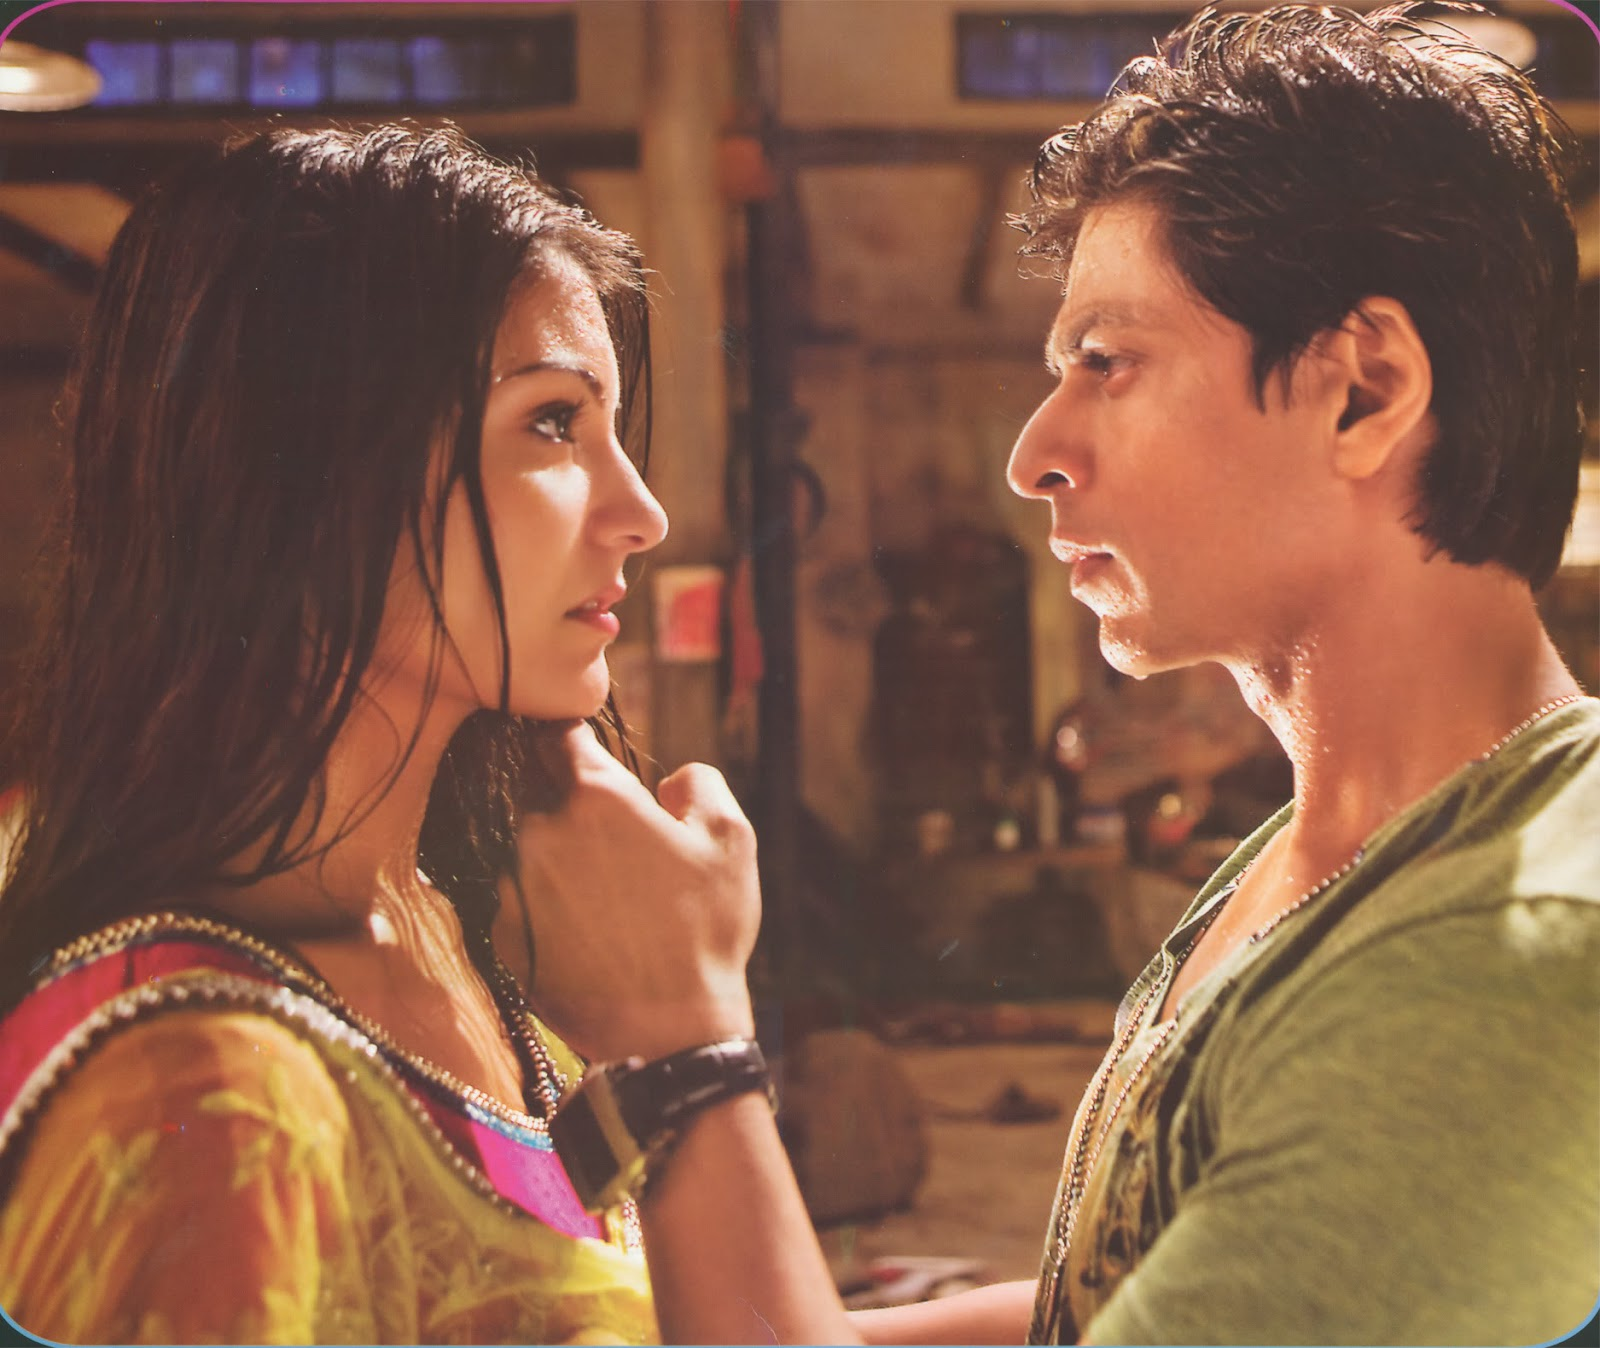 diary of an shah rukh khan fan: my obsession with rab ne bana di jodi